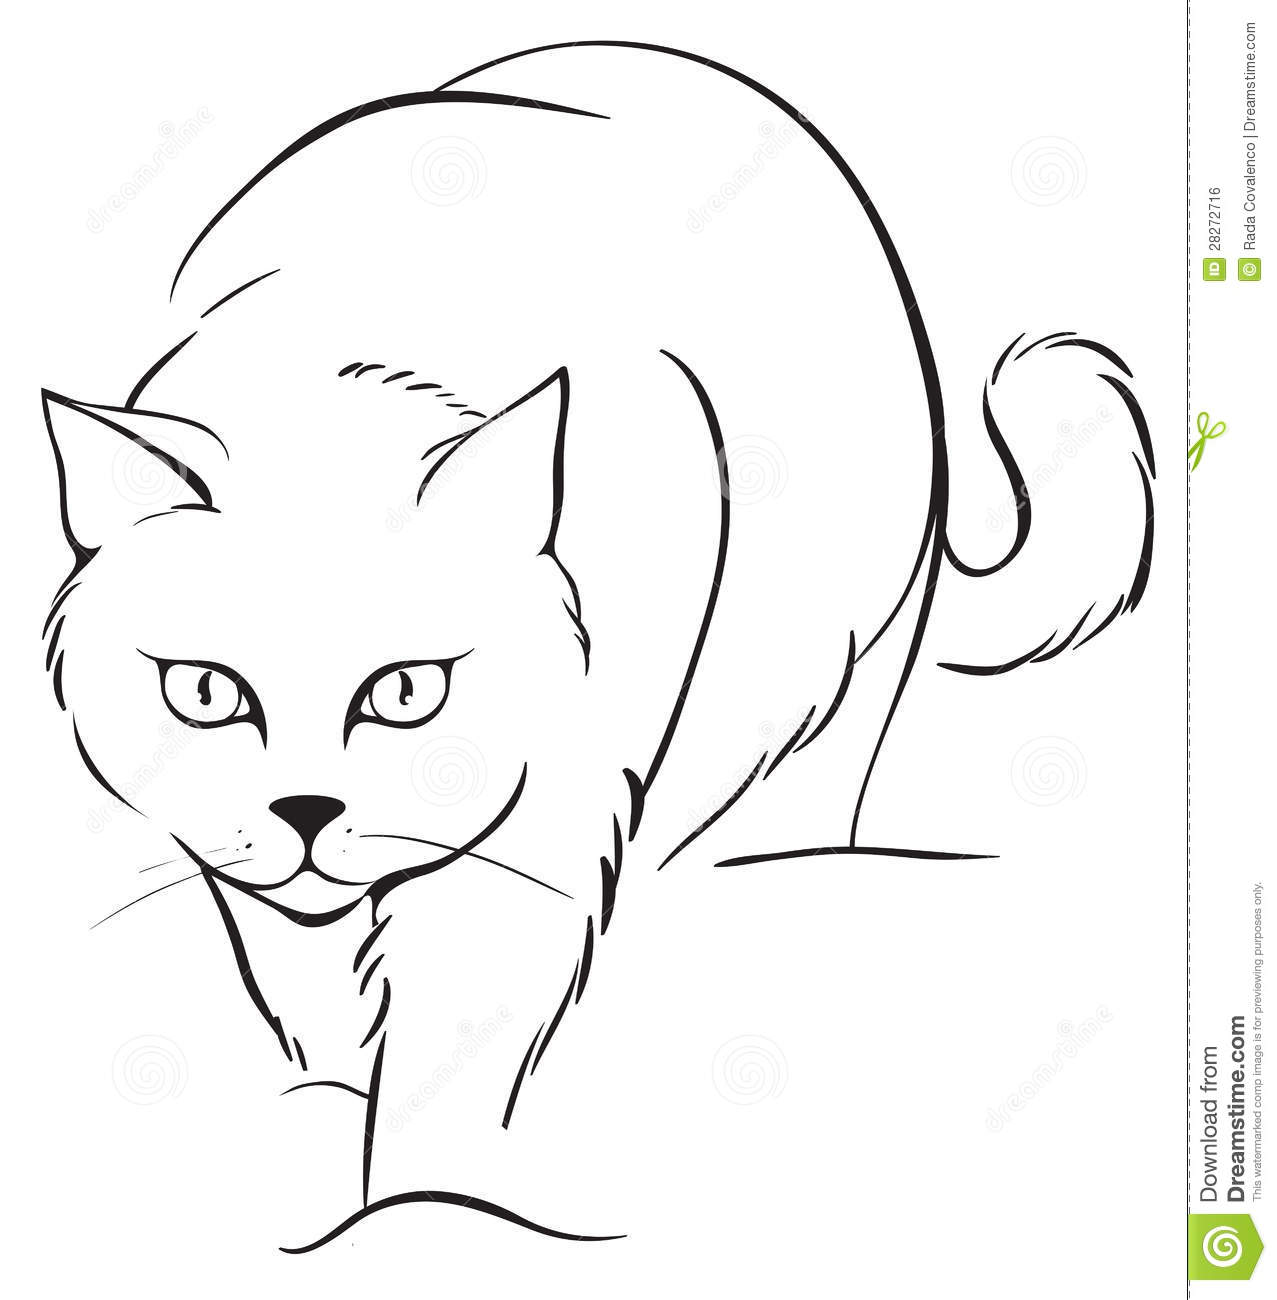 how to draw a cartoon cat step image vector clip art online royalty